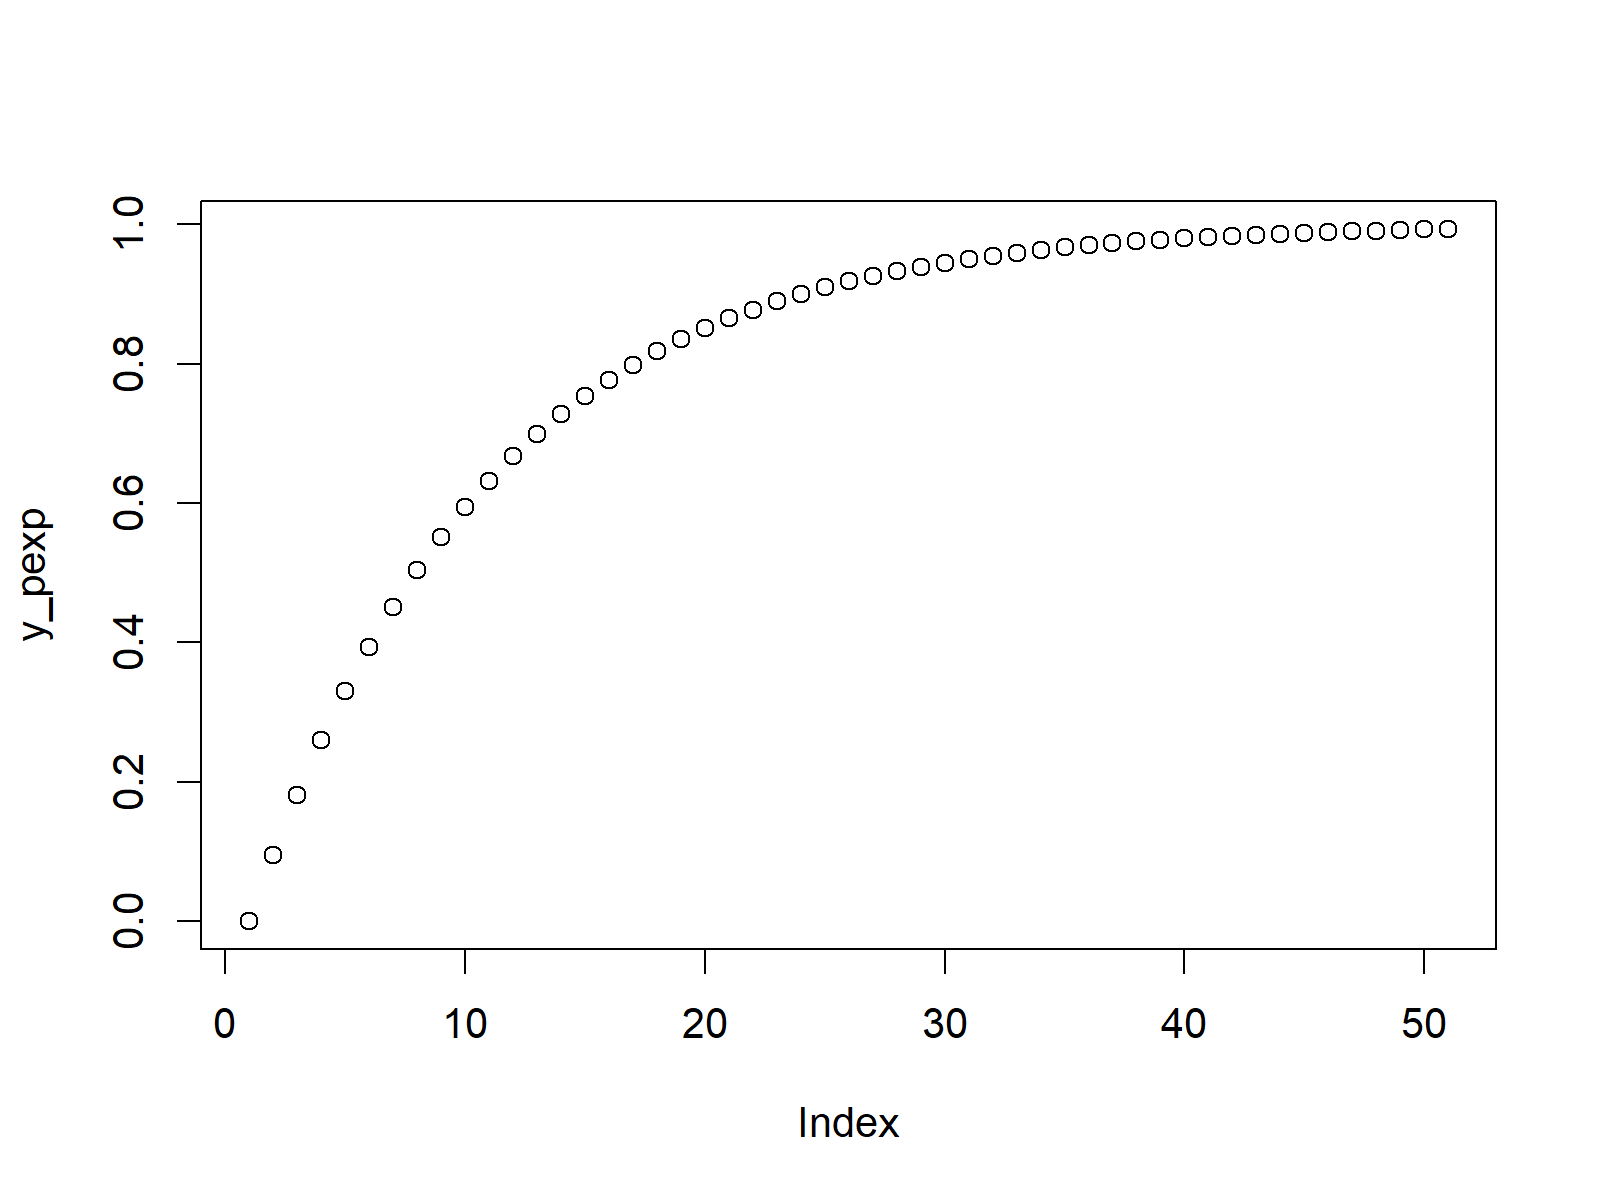 exponential cdf plot in r